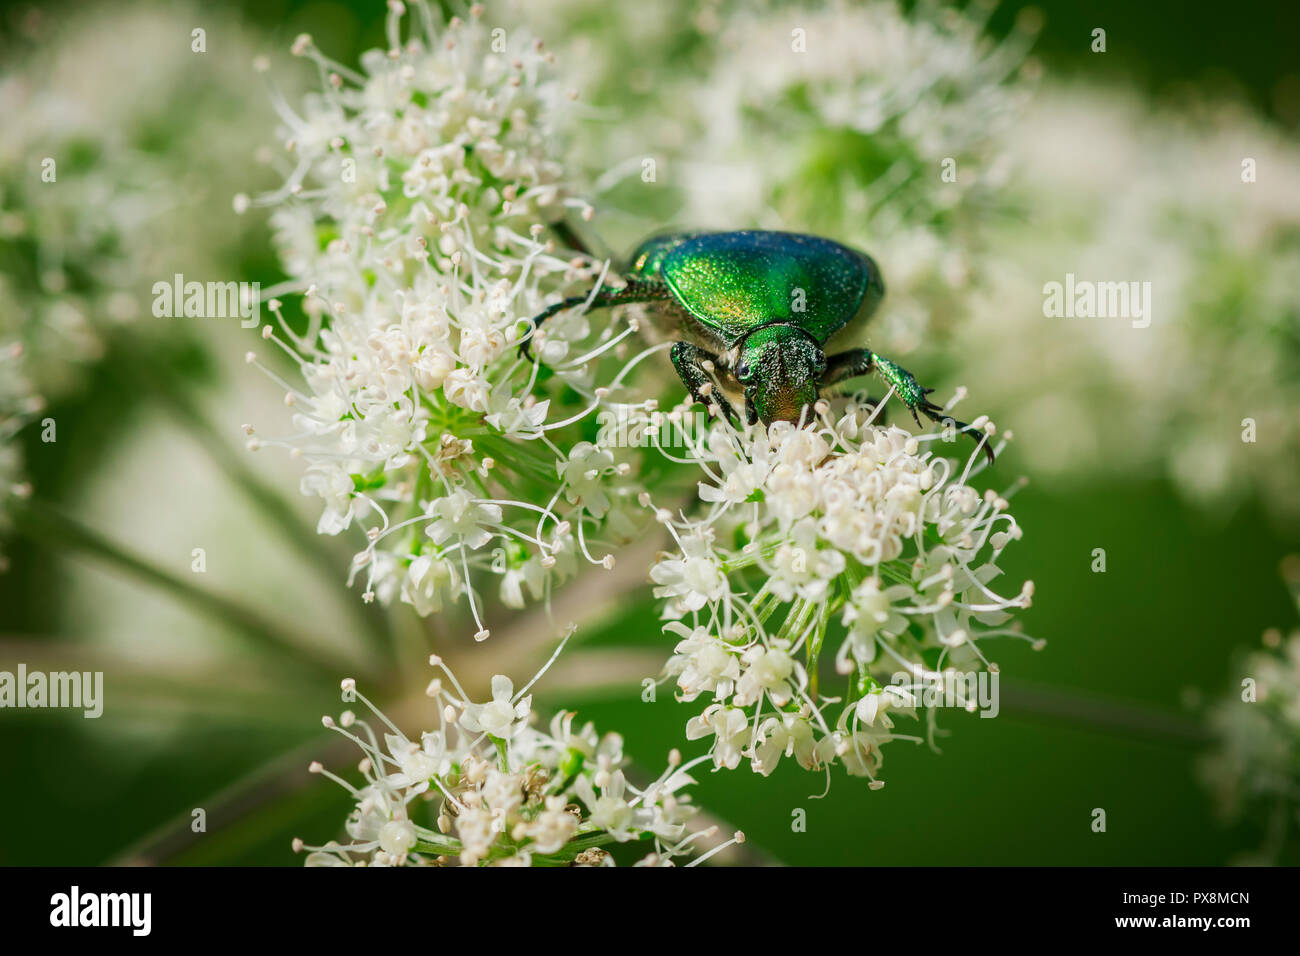 Frontal macro view of a gold-glittering rose beetle (lat: Cetonia aurata) on a meadow bear-claw flower (lat .: Heracleum sphondylium) eating on a summ - Stock Image